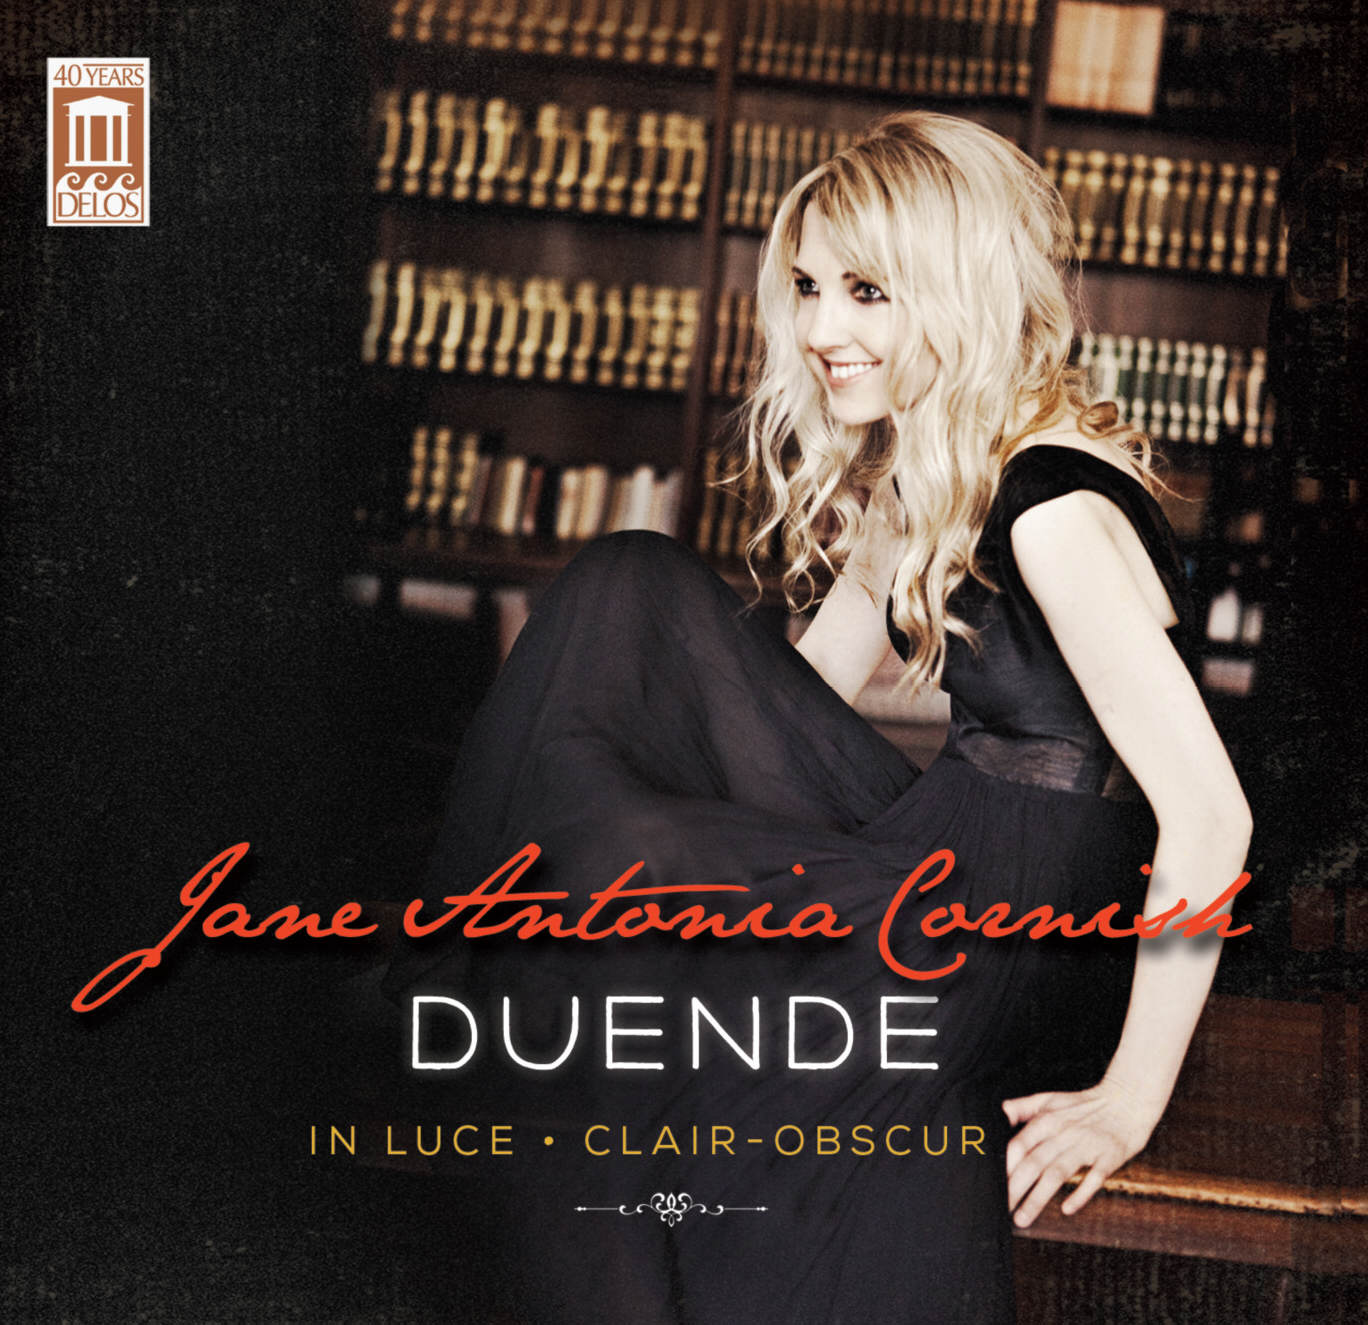 Duende: Chamber Music by Jane Antonia Cornish